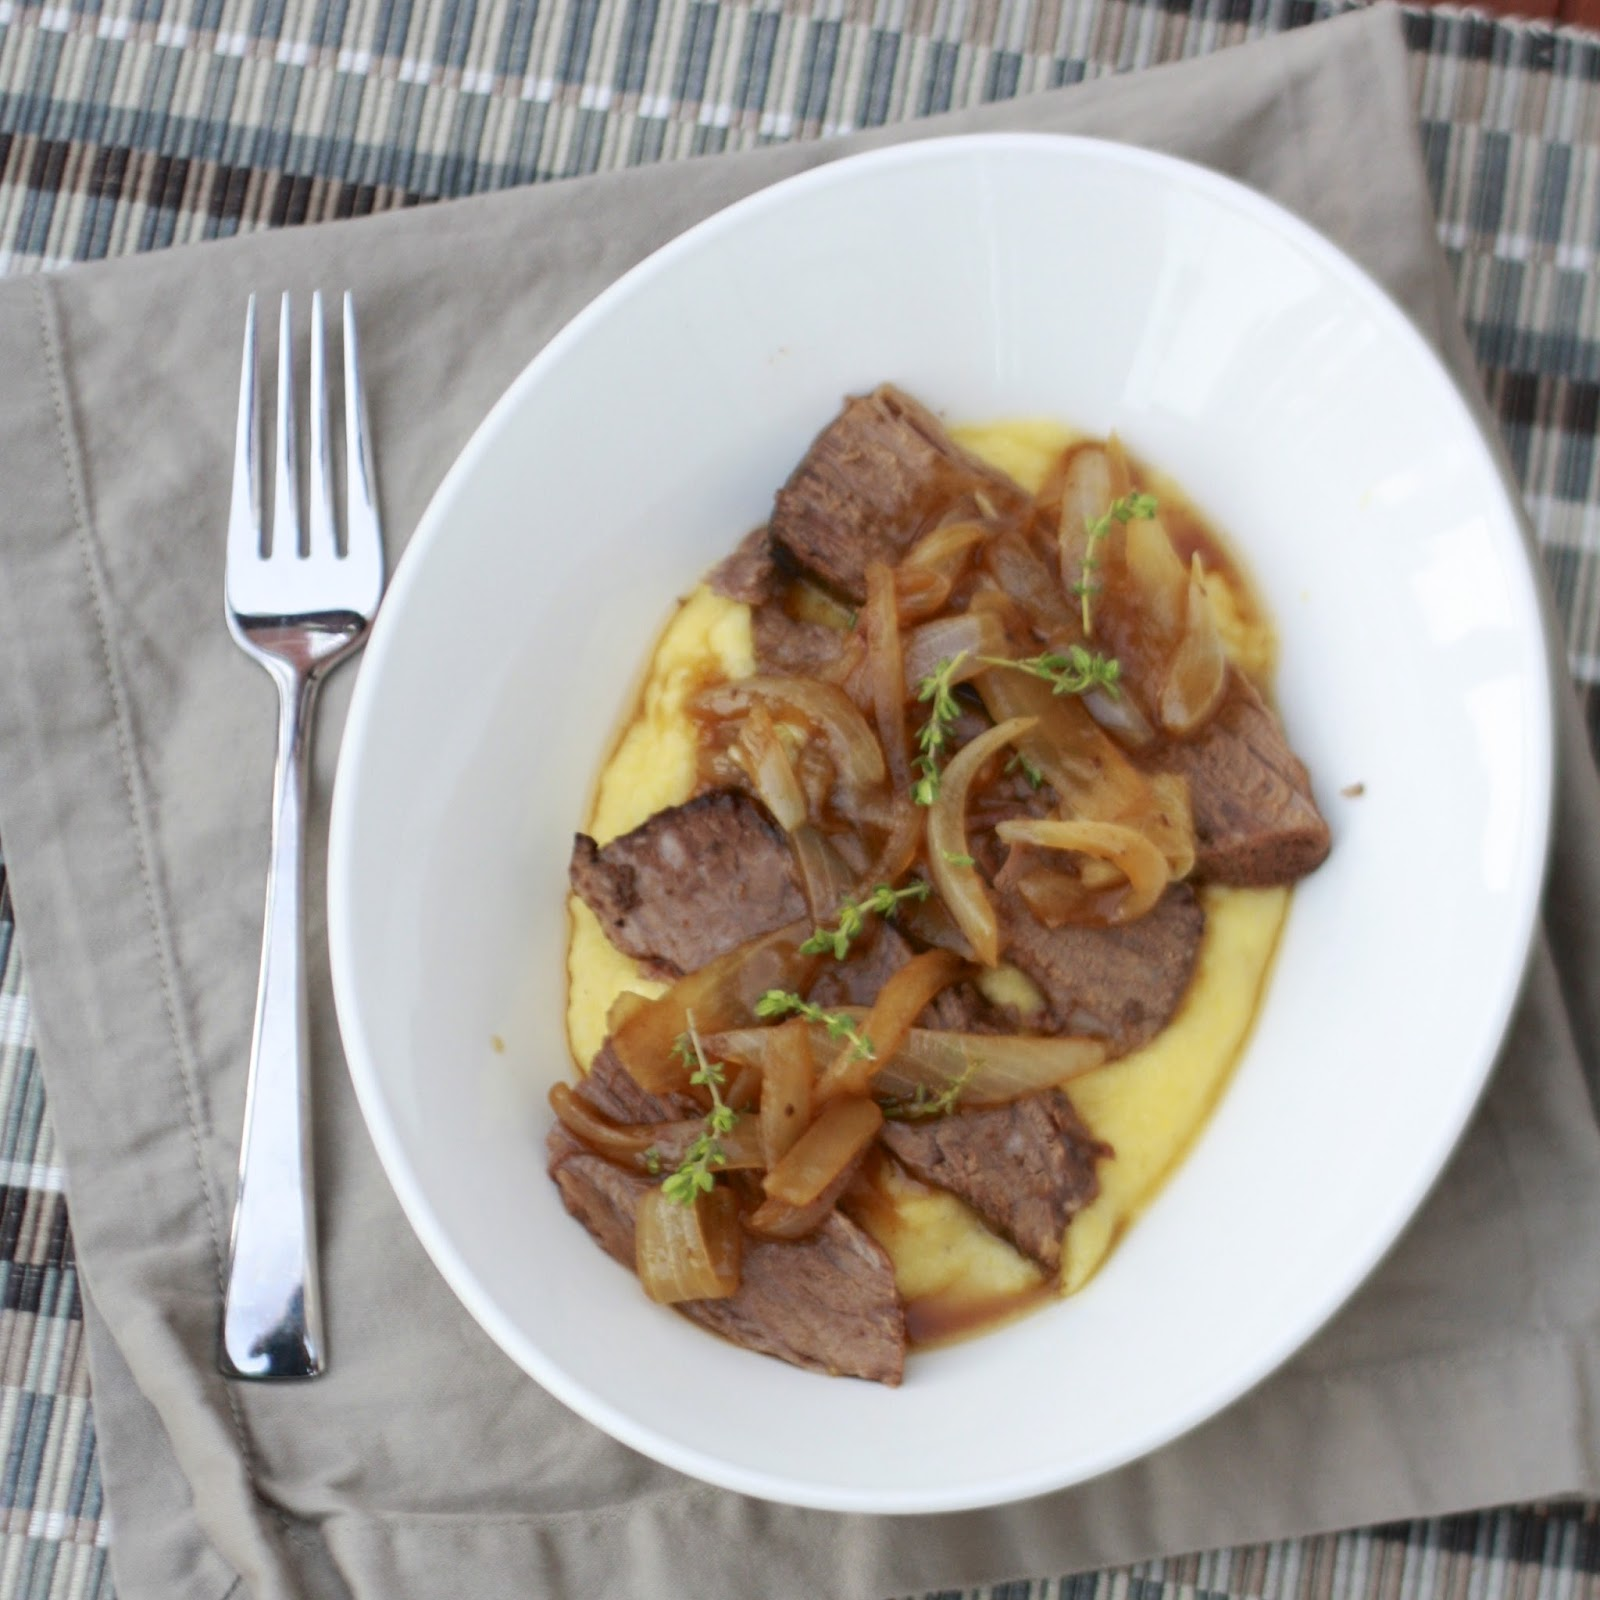 Beer Braised Brisket over Polenta with Onion Jam | The Sweets Life